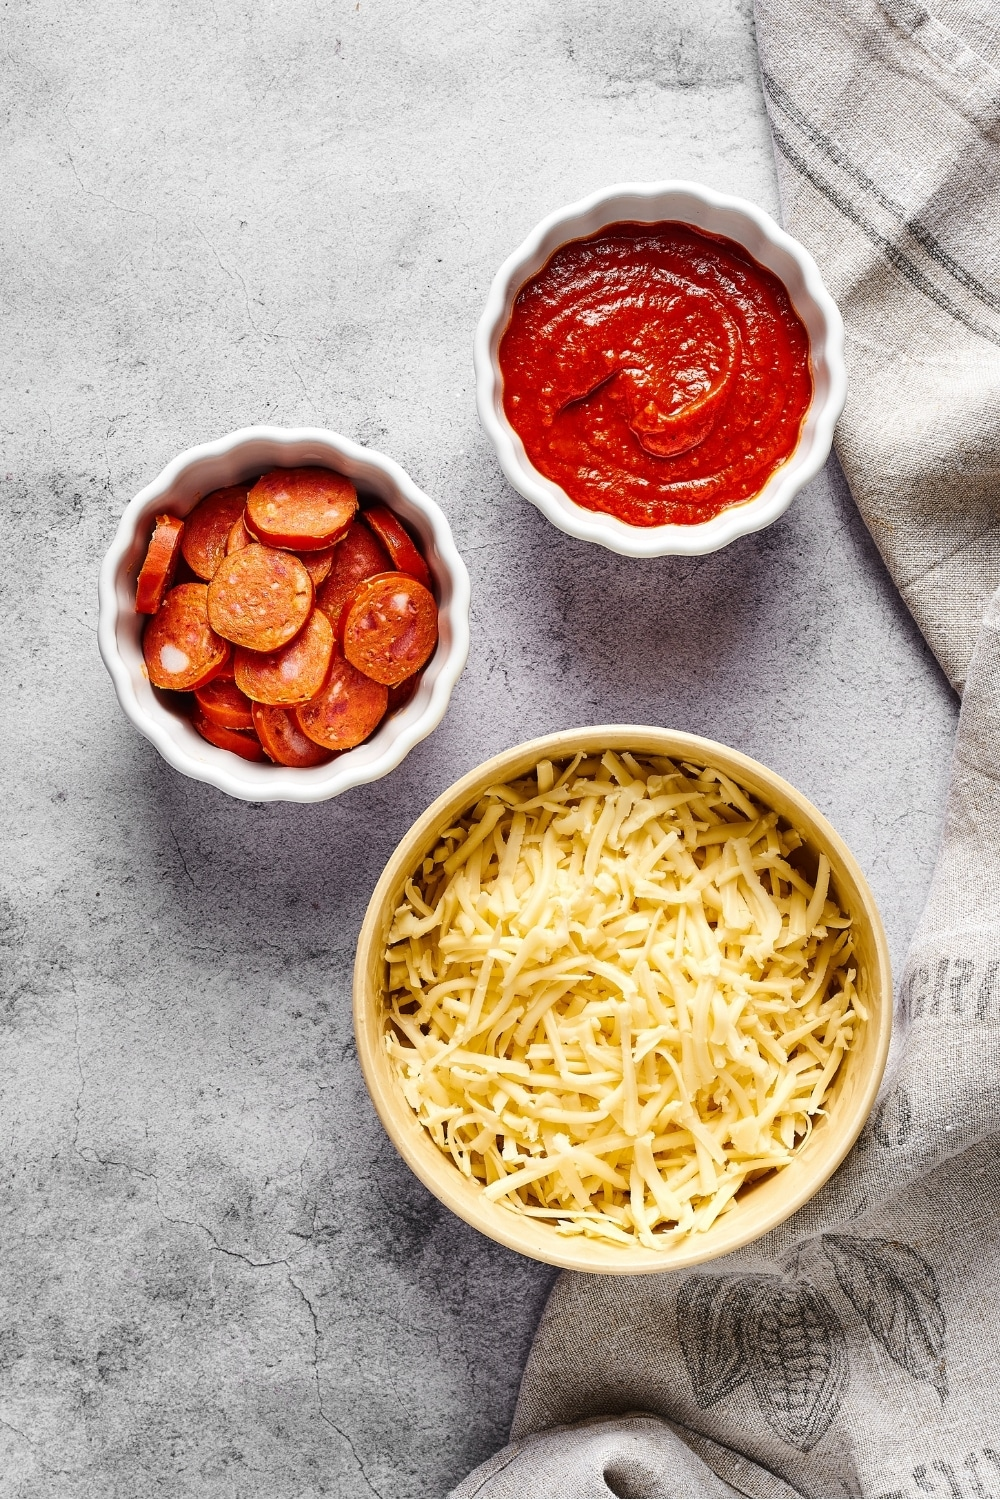 A bowl of shredded mozzarella cheese, a small white bowl of pepperoni, and a small white bowl of pizza sauce all on a grey counter.